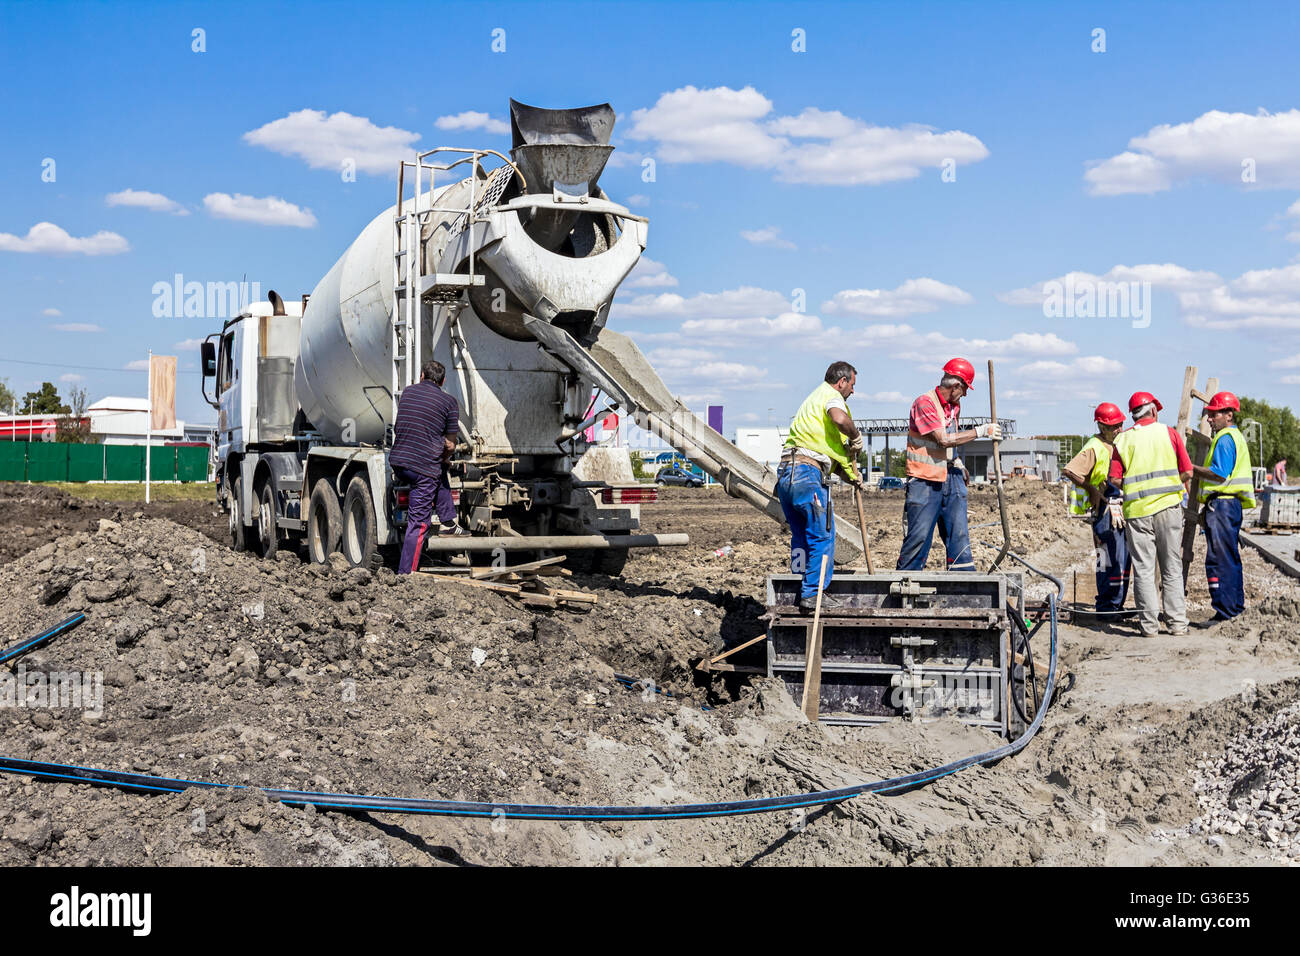 Workers at building site are pouring concrete in reinforced mold. Stock Photo